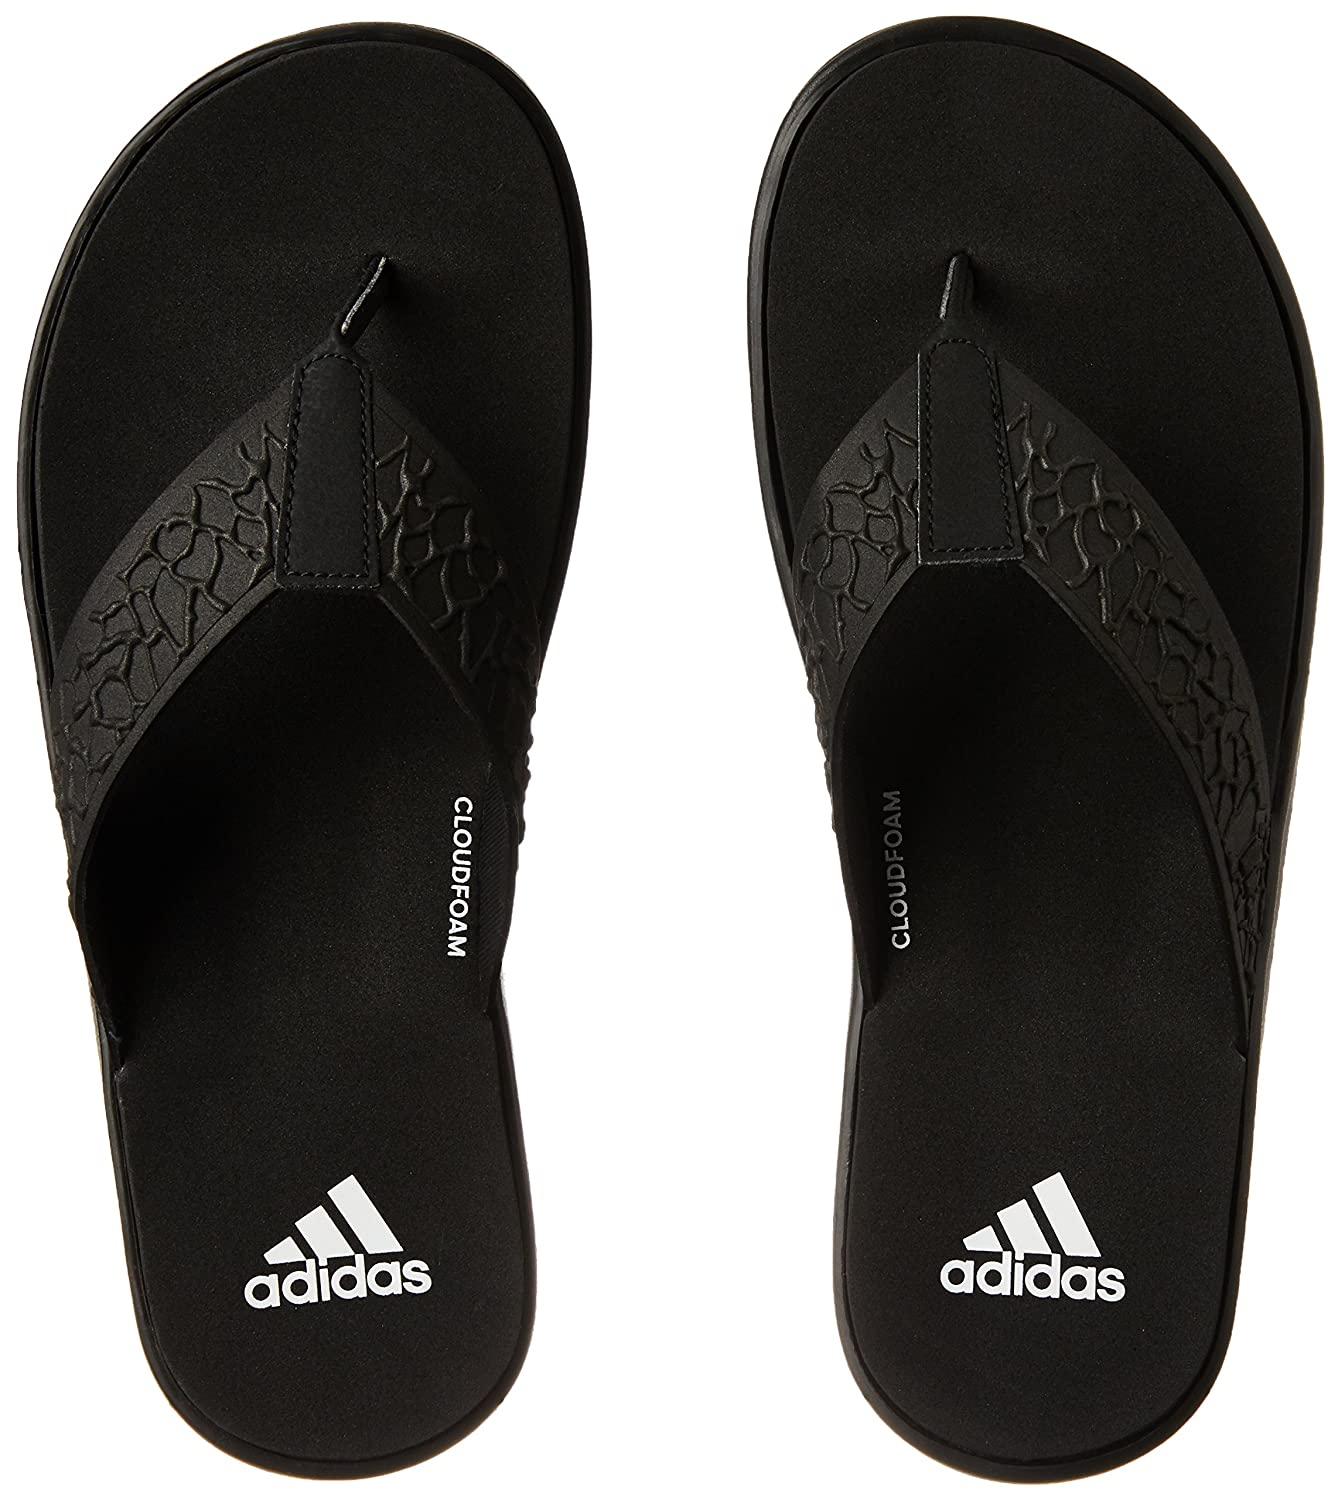 76b90b58830d Adidas Men s Beachcloud Cf Y Cblack Ftwwht Cblack House Slippers - 9  UK India (43 EU) (BB0503)  Buy Online at Low Prices in India - Amazon.in